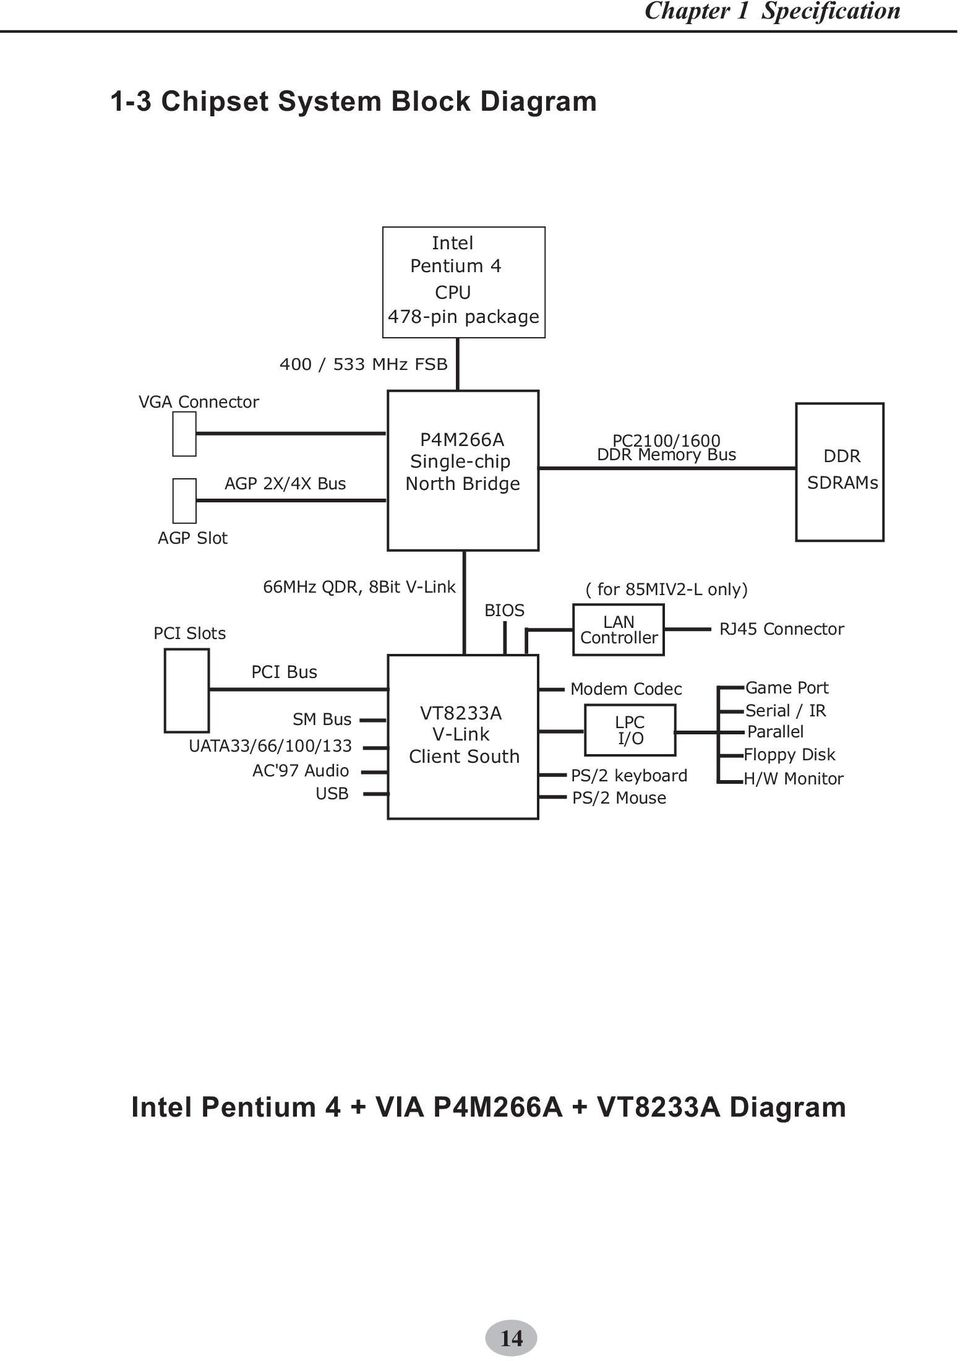 85miv2 L Components Locations Pdf Pentium 4 Block Diagram Uata33 66 00 33 Ac97 Audio Usb Bios Vt8233a V